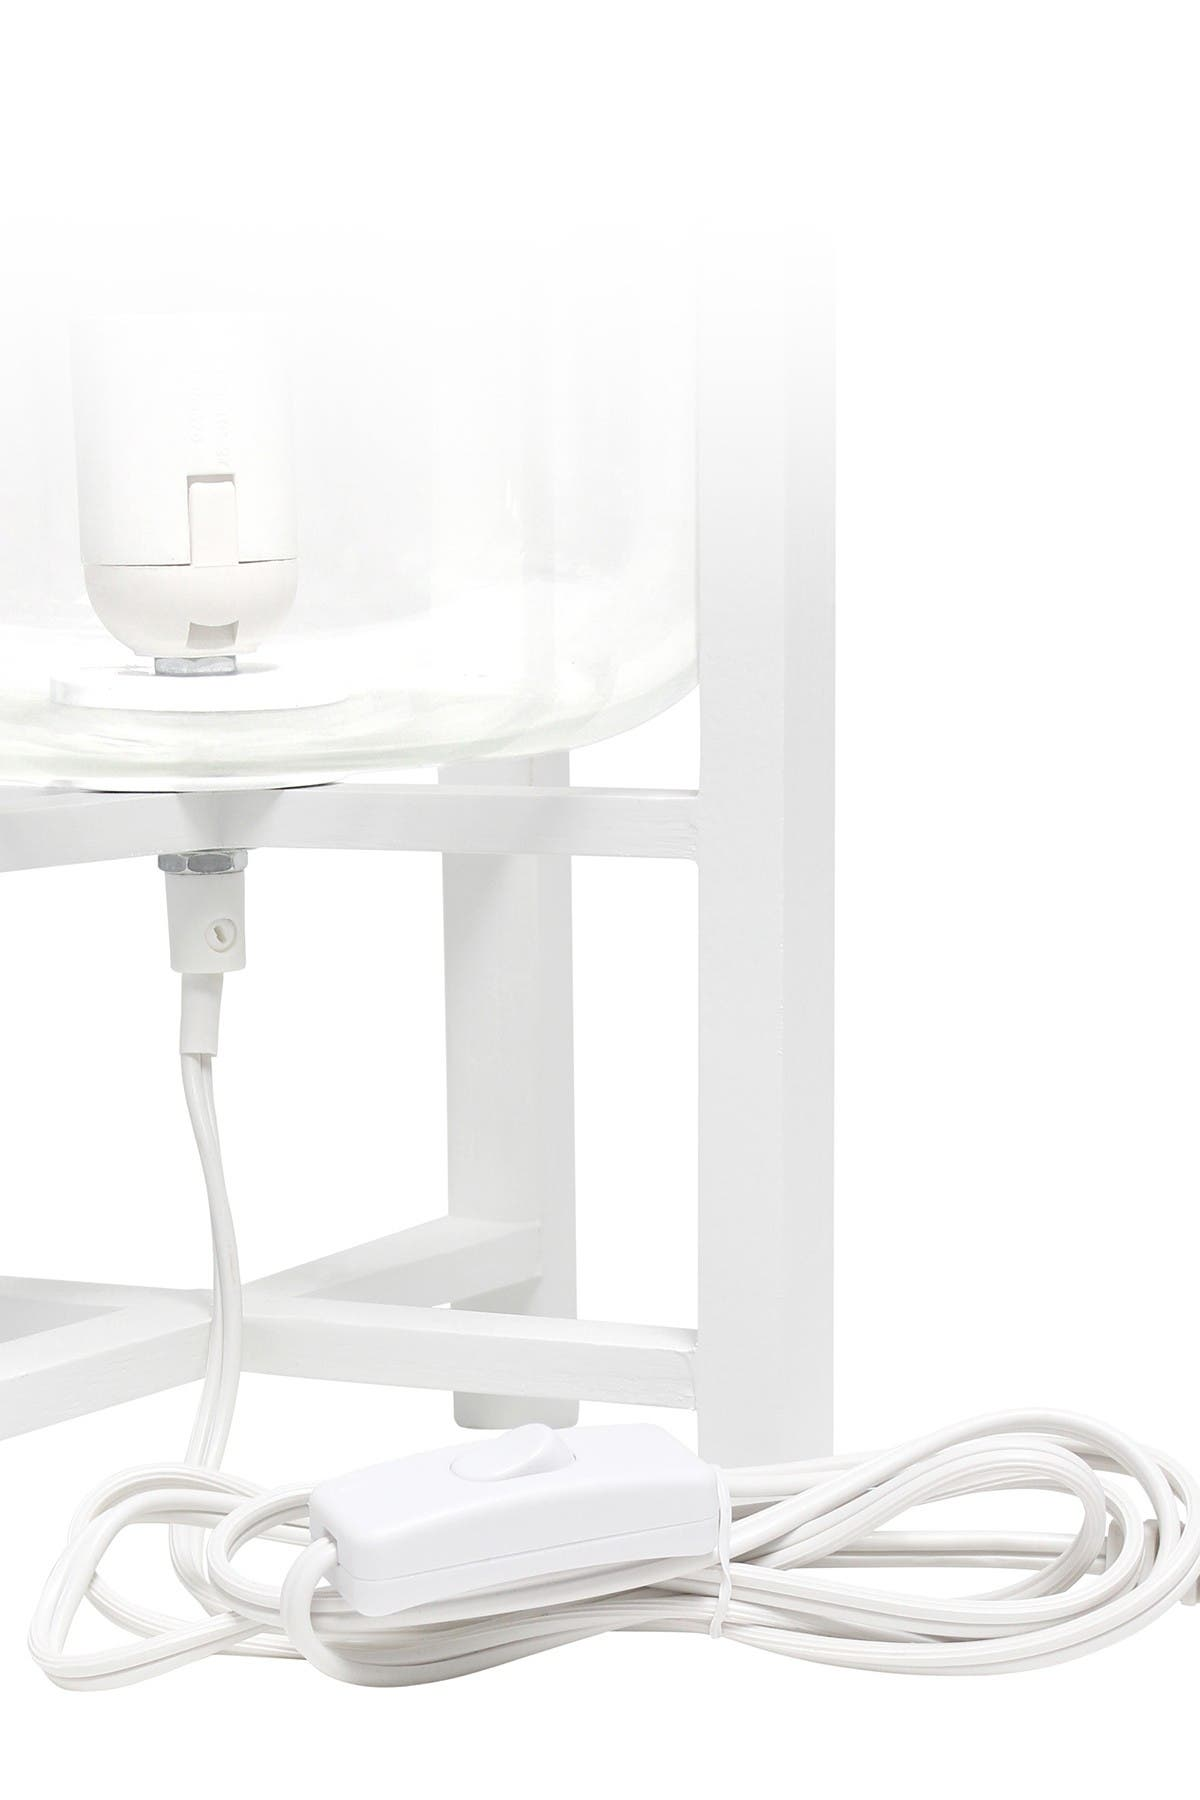 Image of LALIA HOME Simple Designs White Wood Mounted Table Lamp with Clear Glass Cylinder Shade